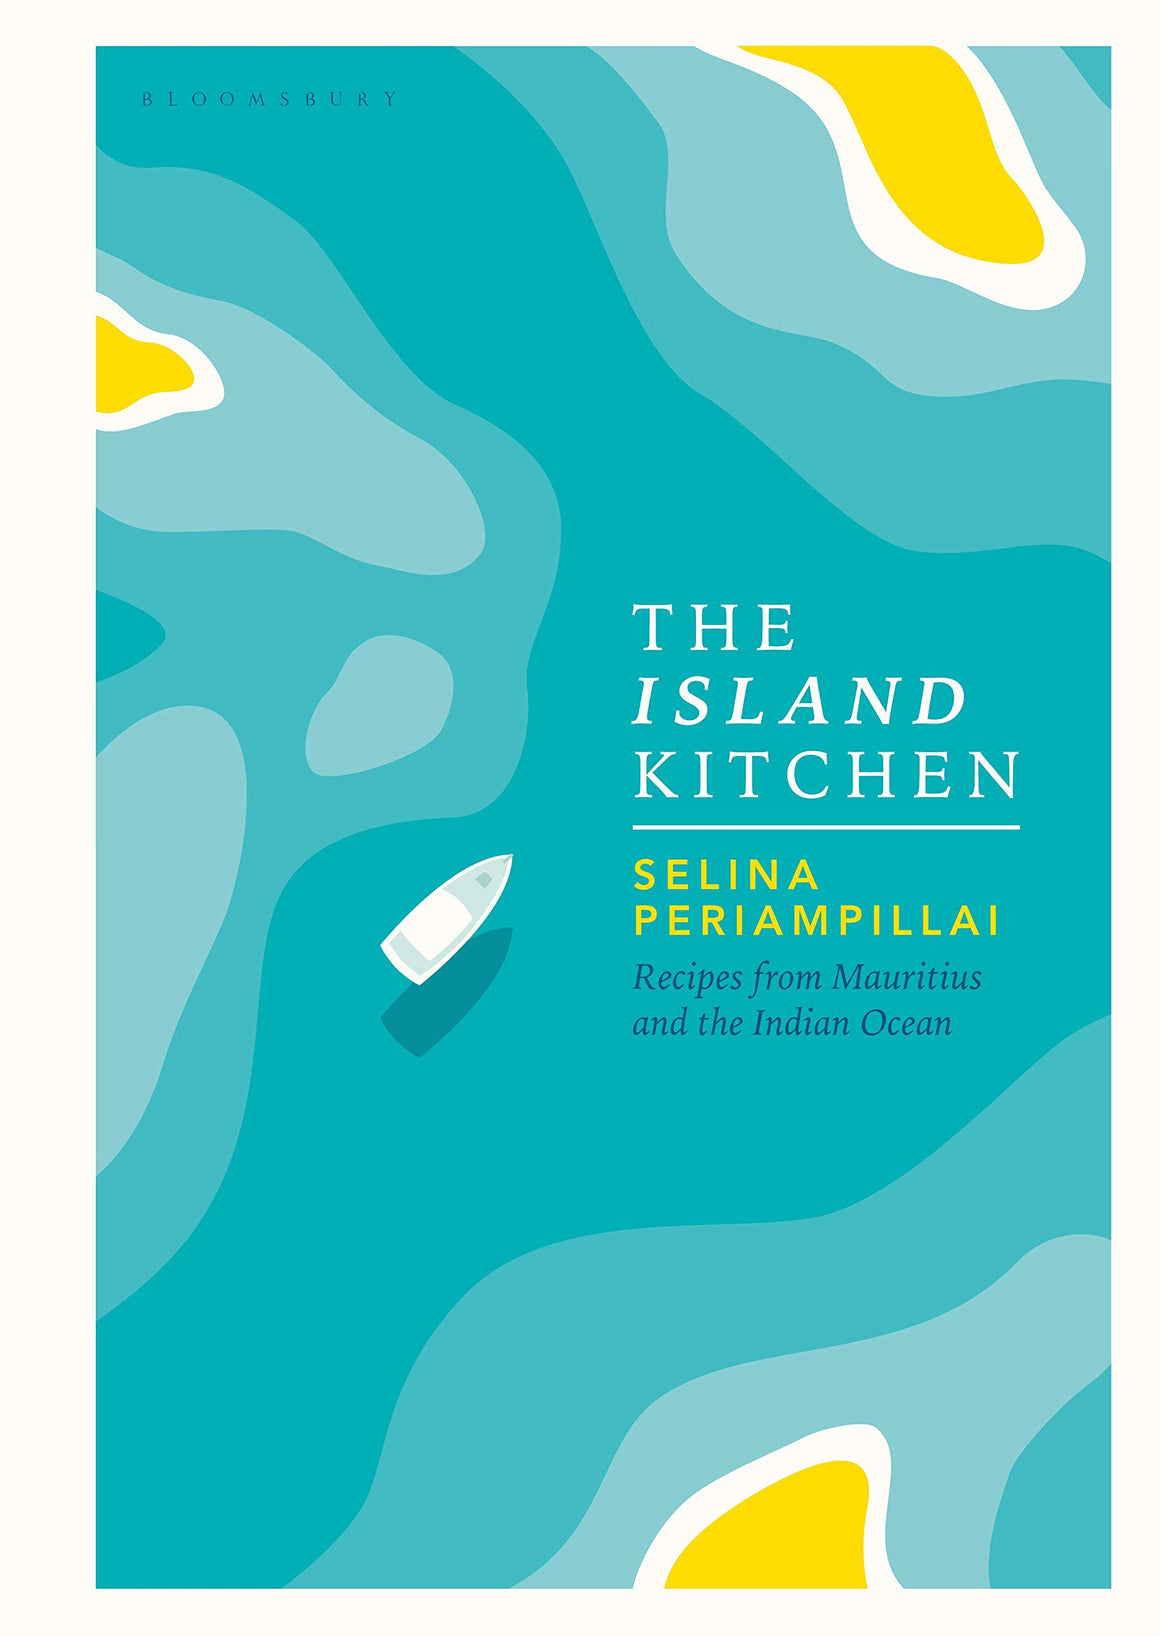 Selina Periampillai. The Island Kitchen: Recipes from Mauritius and the Indian Ocean